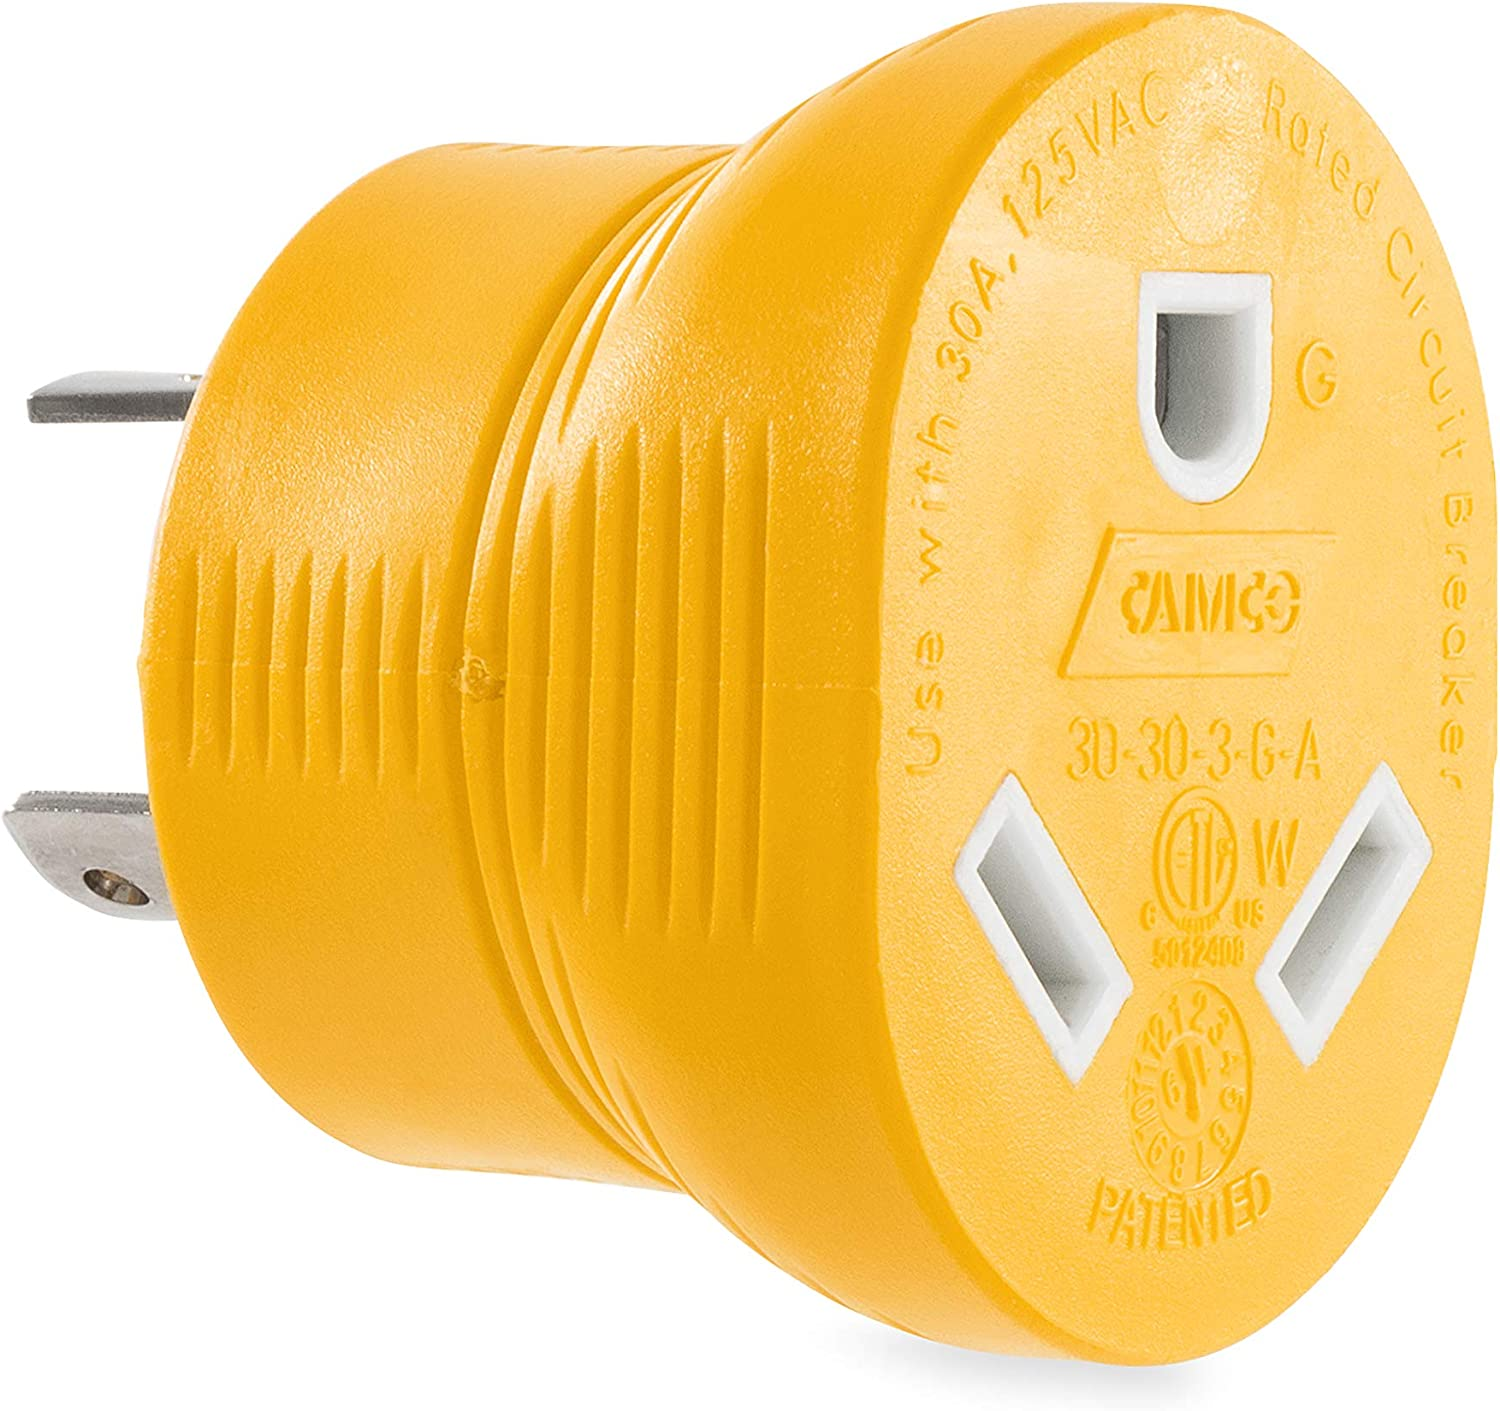 Camco Heavy Duty PowerGrip 30 Max 89% OFF Amp Adapter 3 Baltimore Mall Prong for Generator